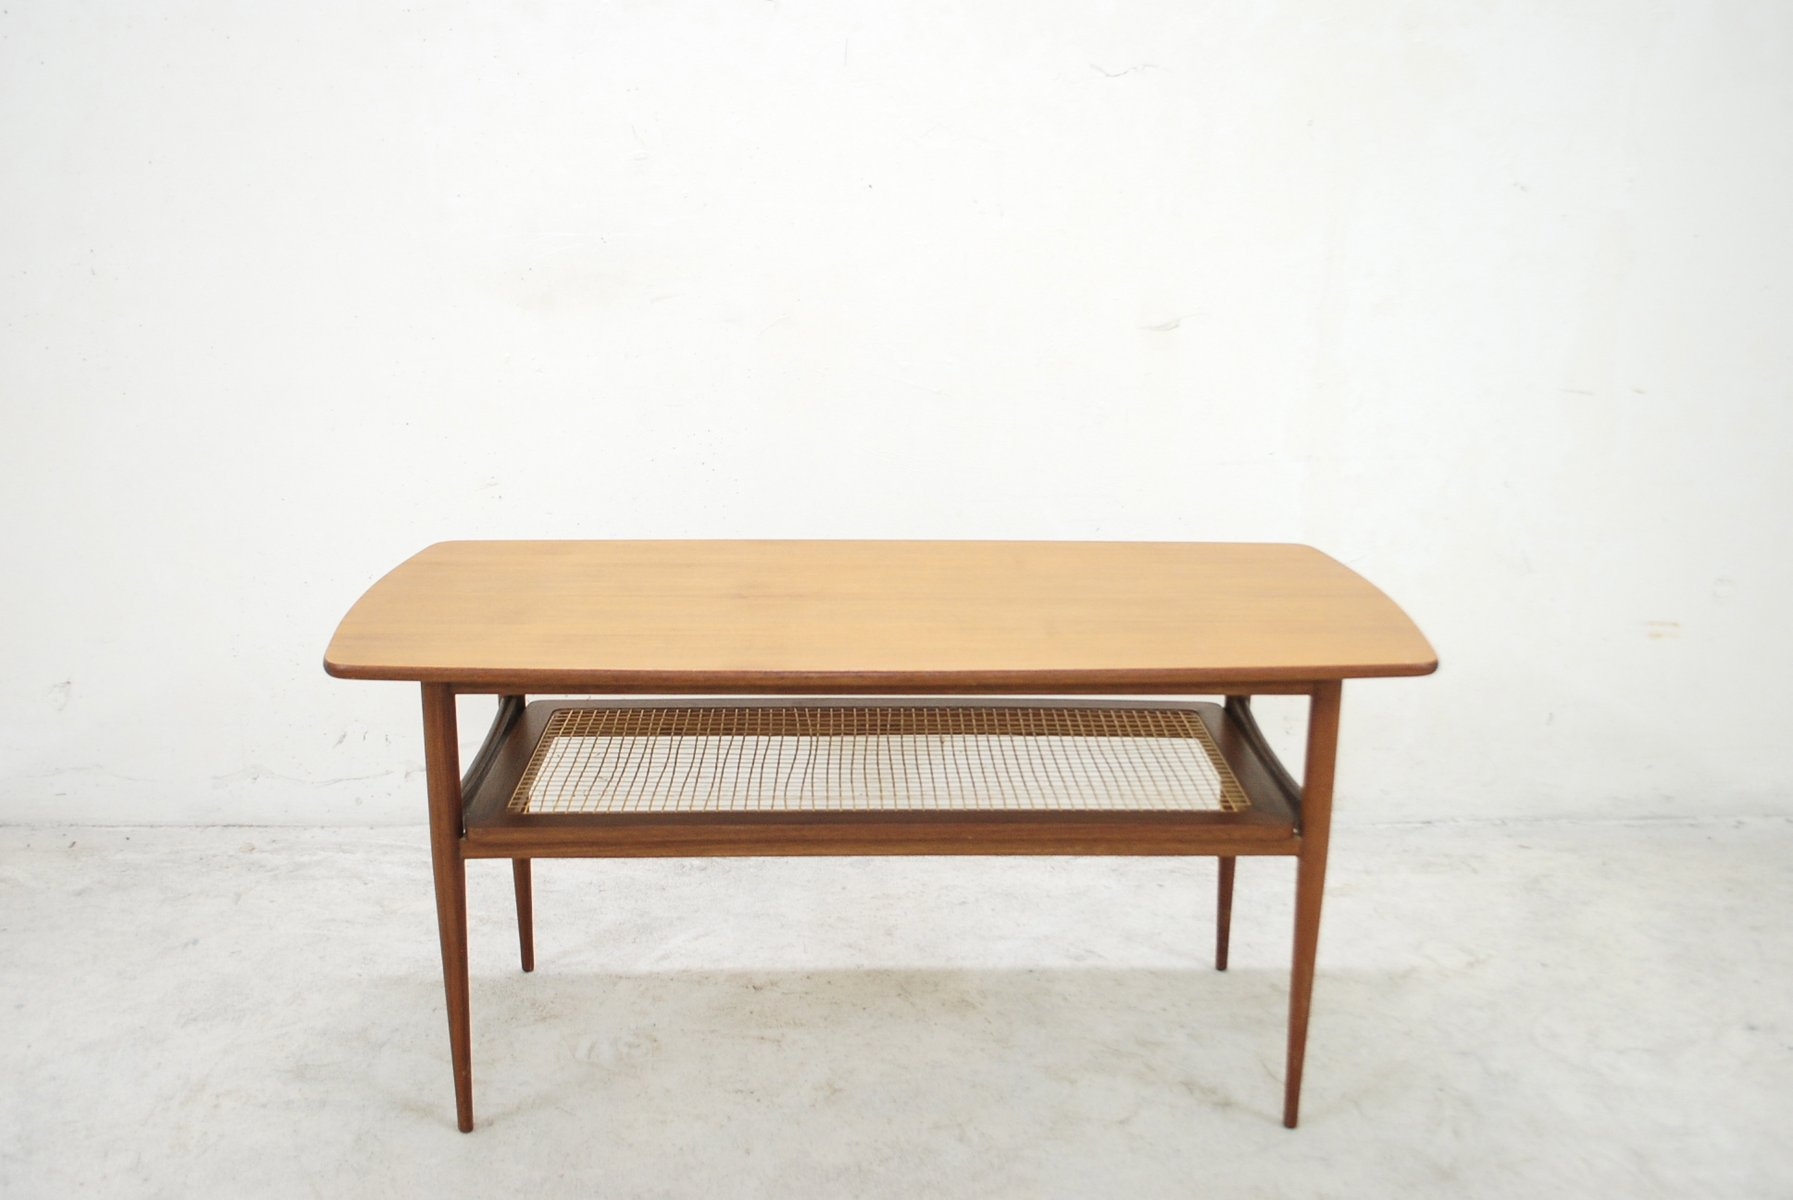 Sculptural Coffee Tables Danish Modern Sculptural Teak And Cane Coffee Table For Sale